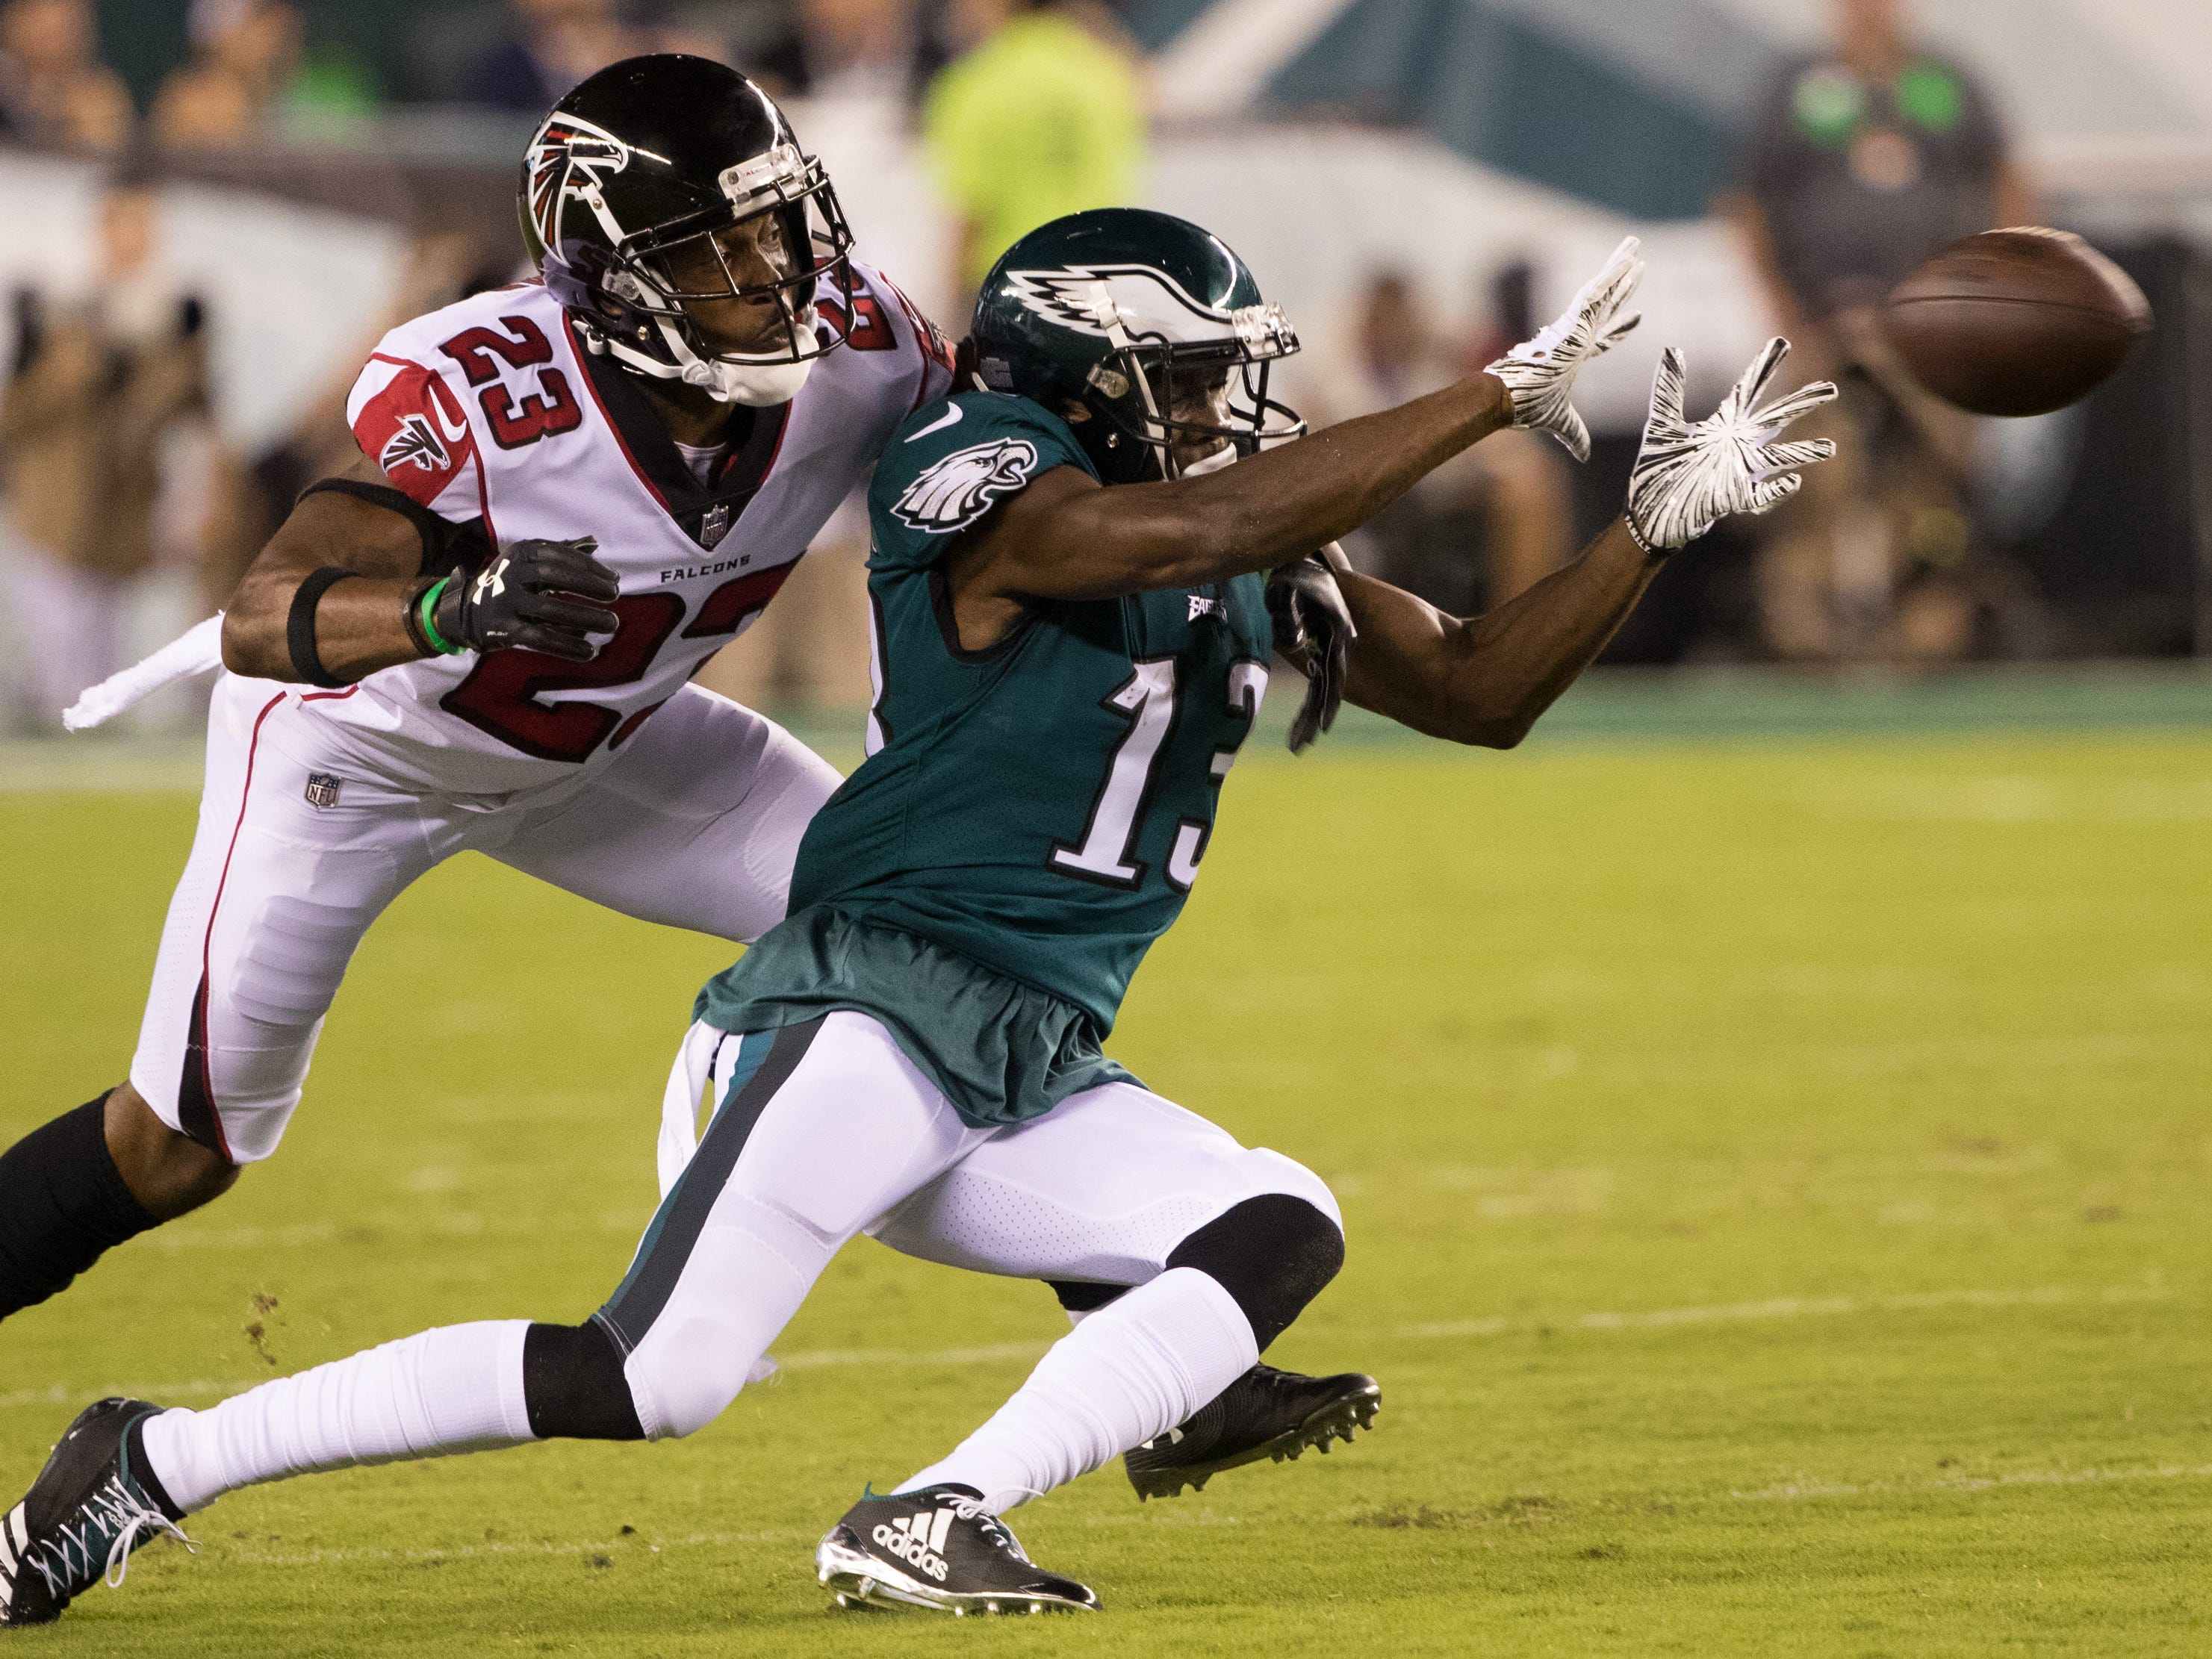 Philadelphia Eagles wide receiver Nelson Agholor makes a catch in front of Atlanta Falcons defensive back Robert Alford during the second quarter at Lincoln Financial Field. - Packers QB Carted Off In Clash With Bears